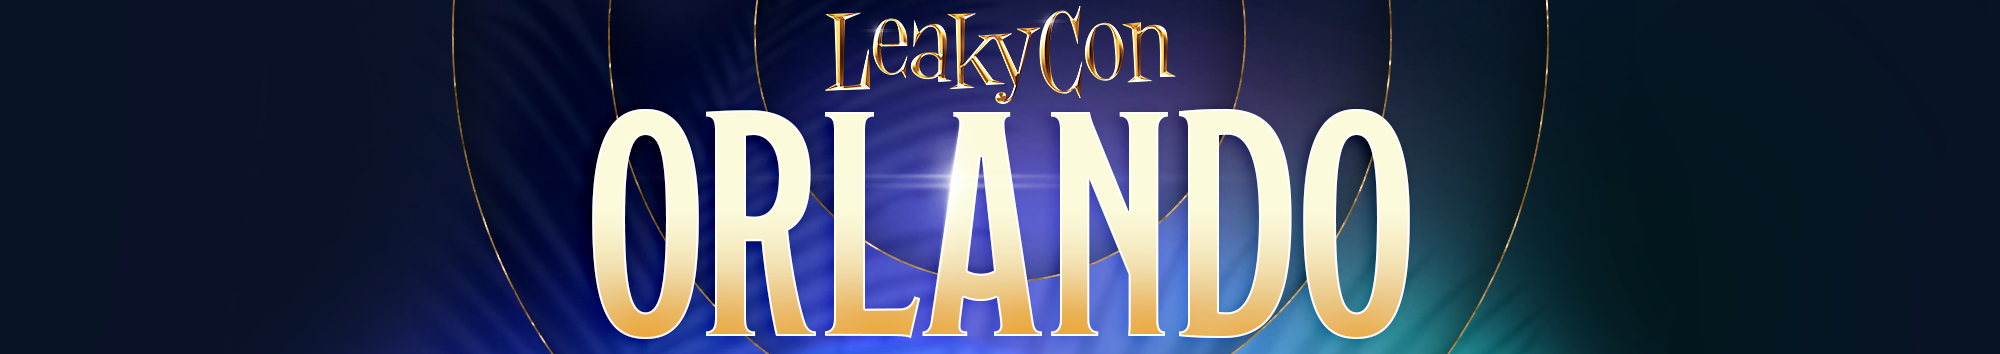 Tickets for LeakyCon 2021: Orlando Add On Experiences in Orlando from ShowClix